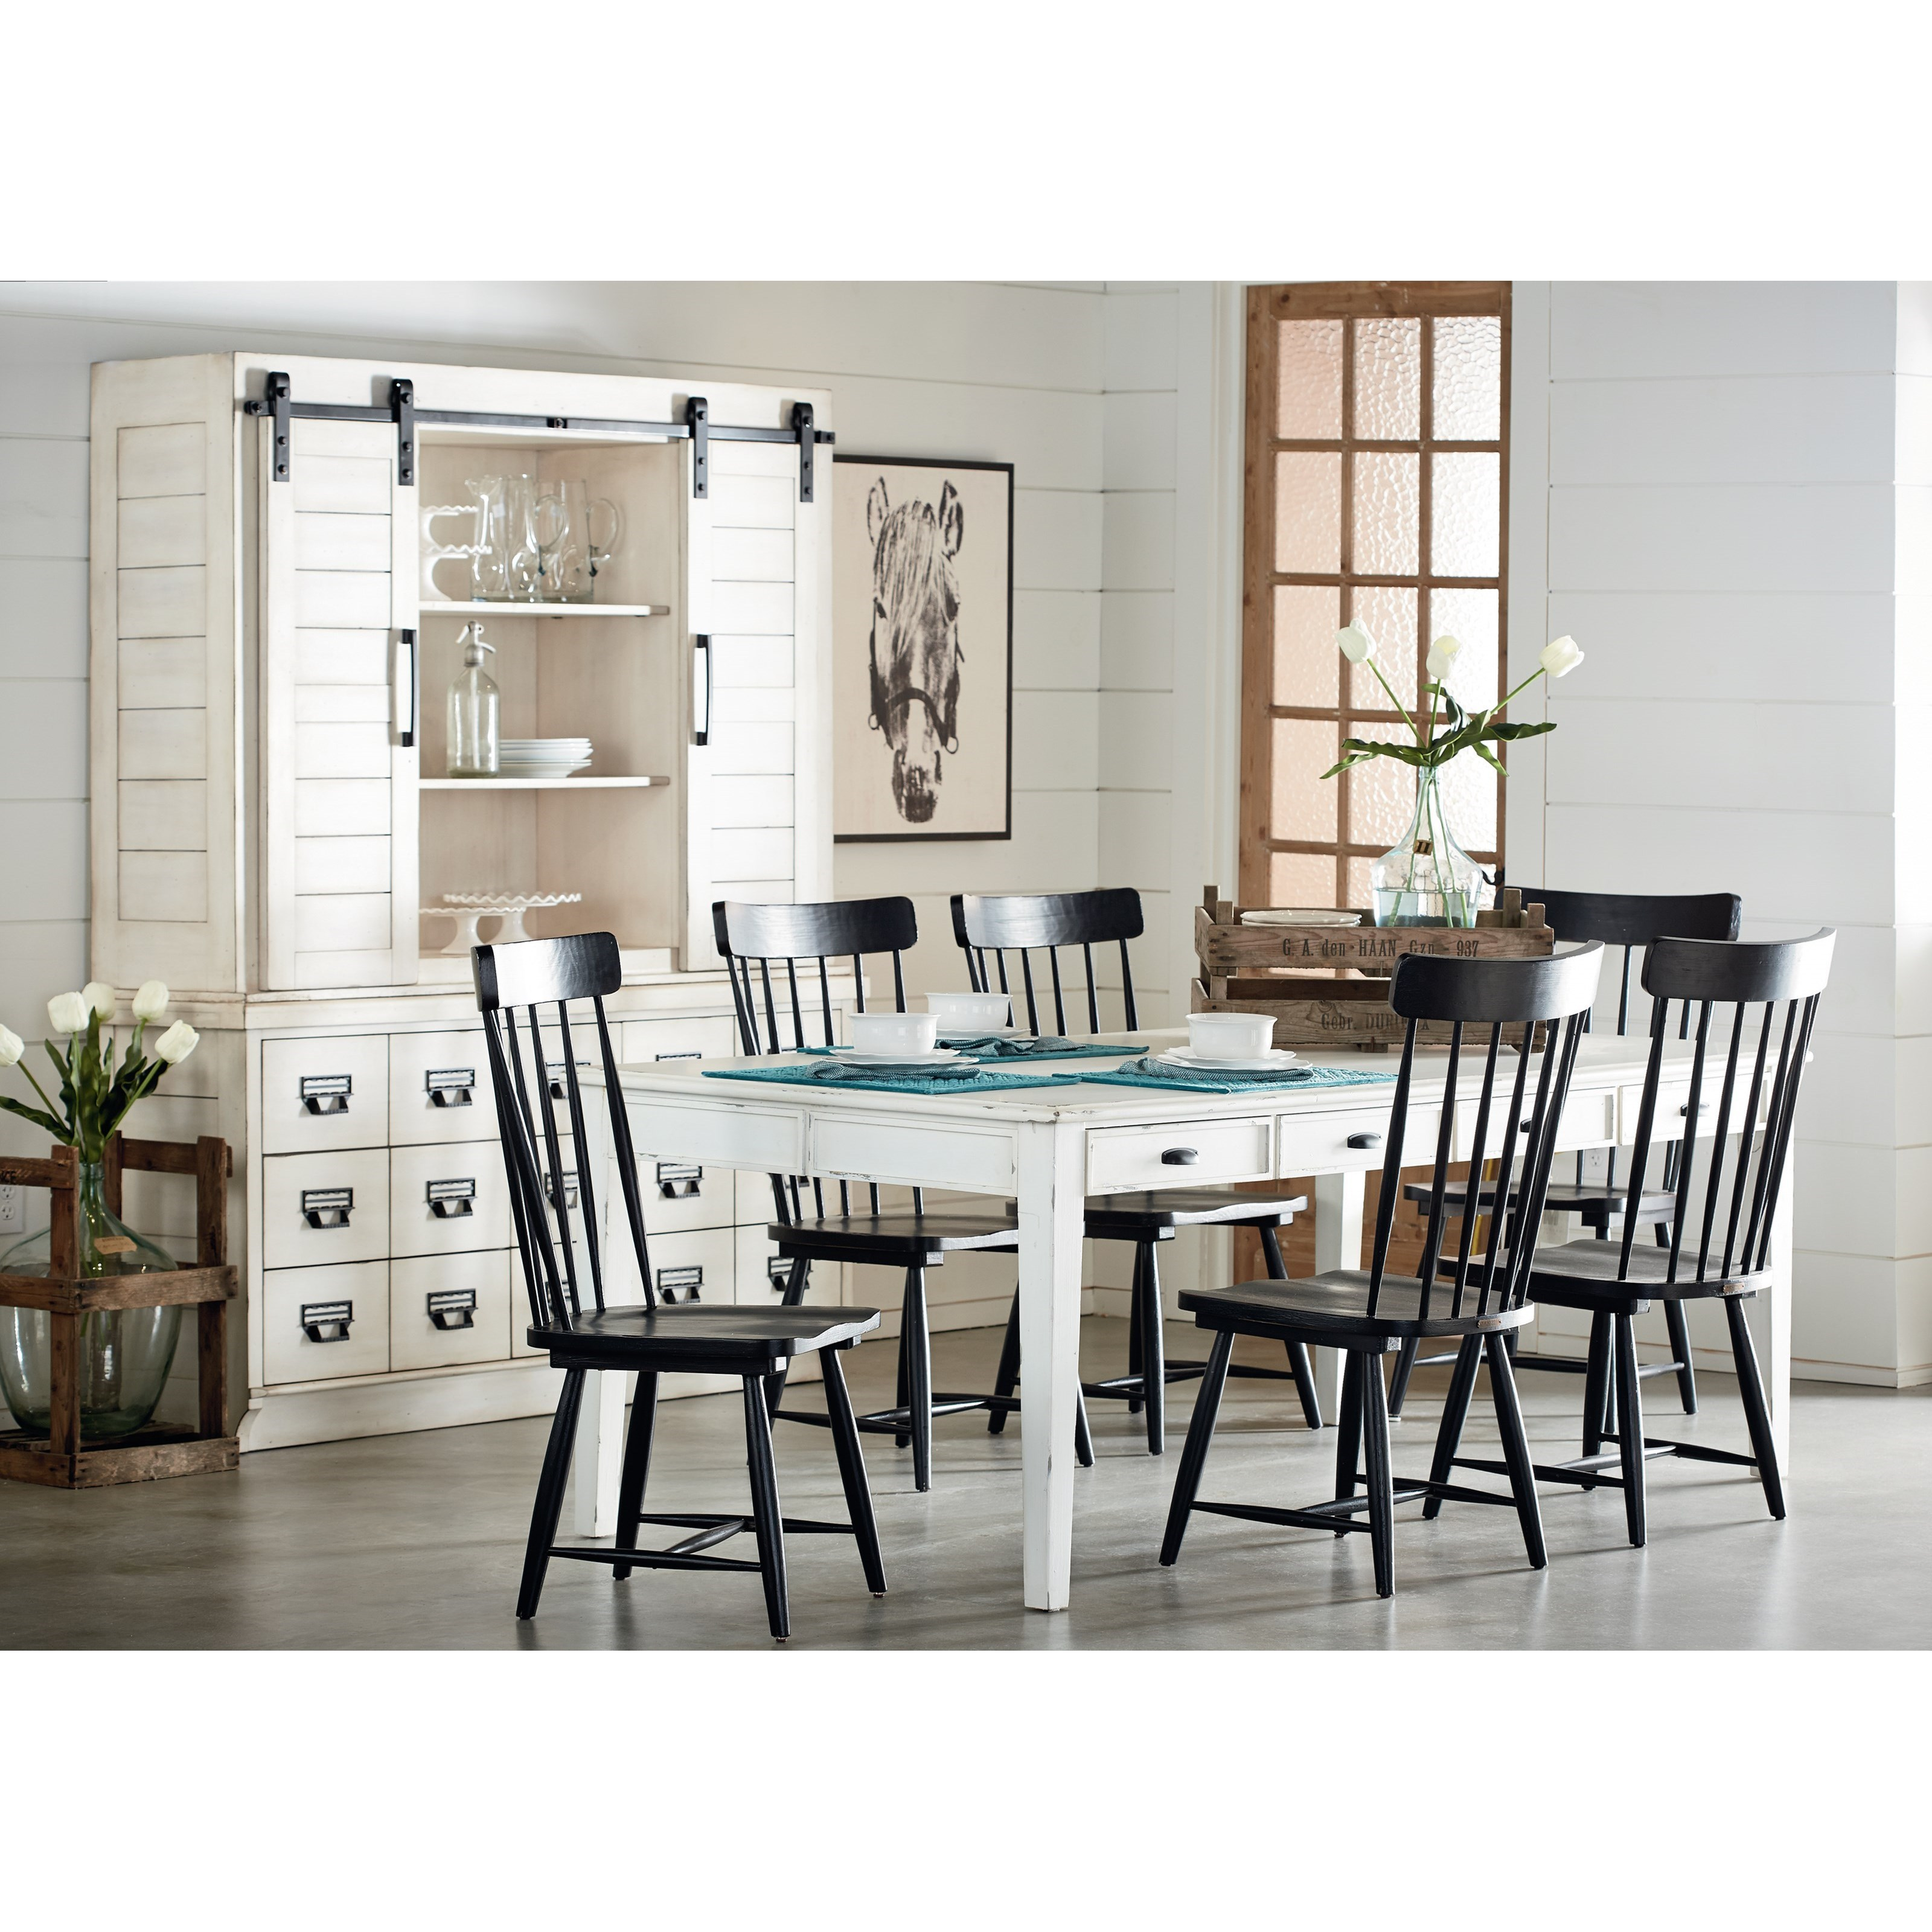 Joanna Gaines Farmhouse Dining Room Magnolia Home By Joanna Gaines Farmhouse Kitchen Dining